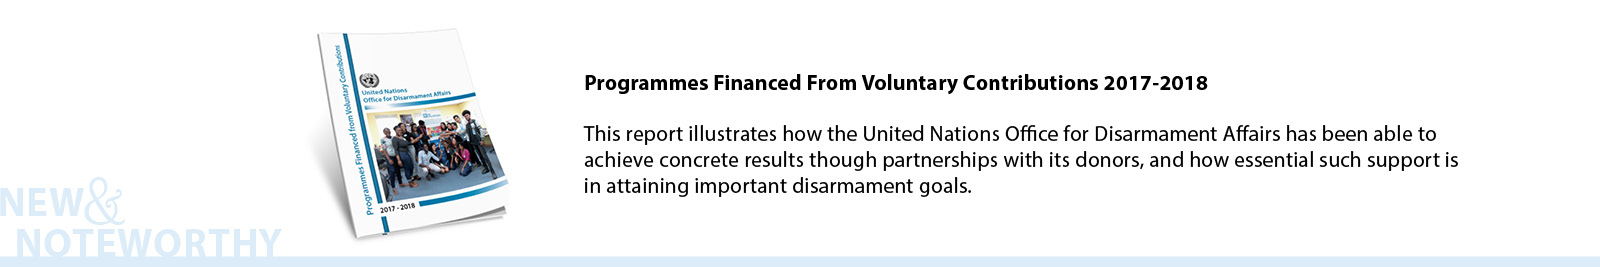 Programmes Financed From Voluntary Contributions 2017-2018 - This report illustrates how the United Nations Office for Disarmament Affairs has been able to achieve concrete results though partnerships with its donors, and how essential such support is in attaining important disarmament goals.